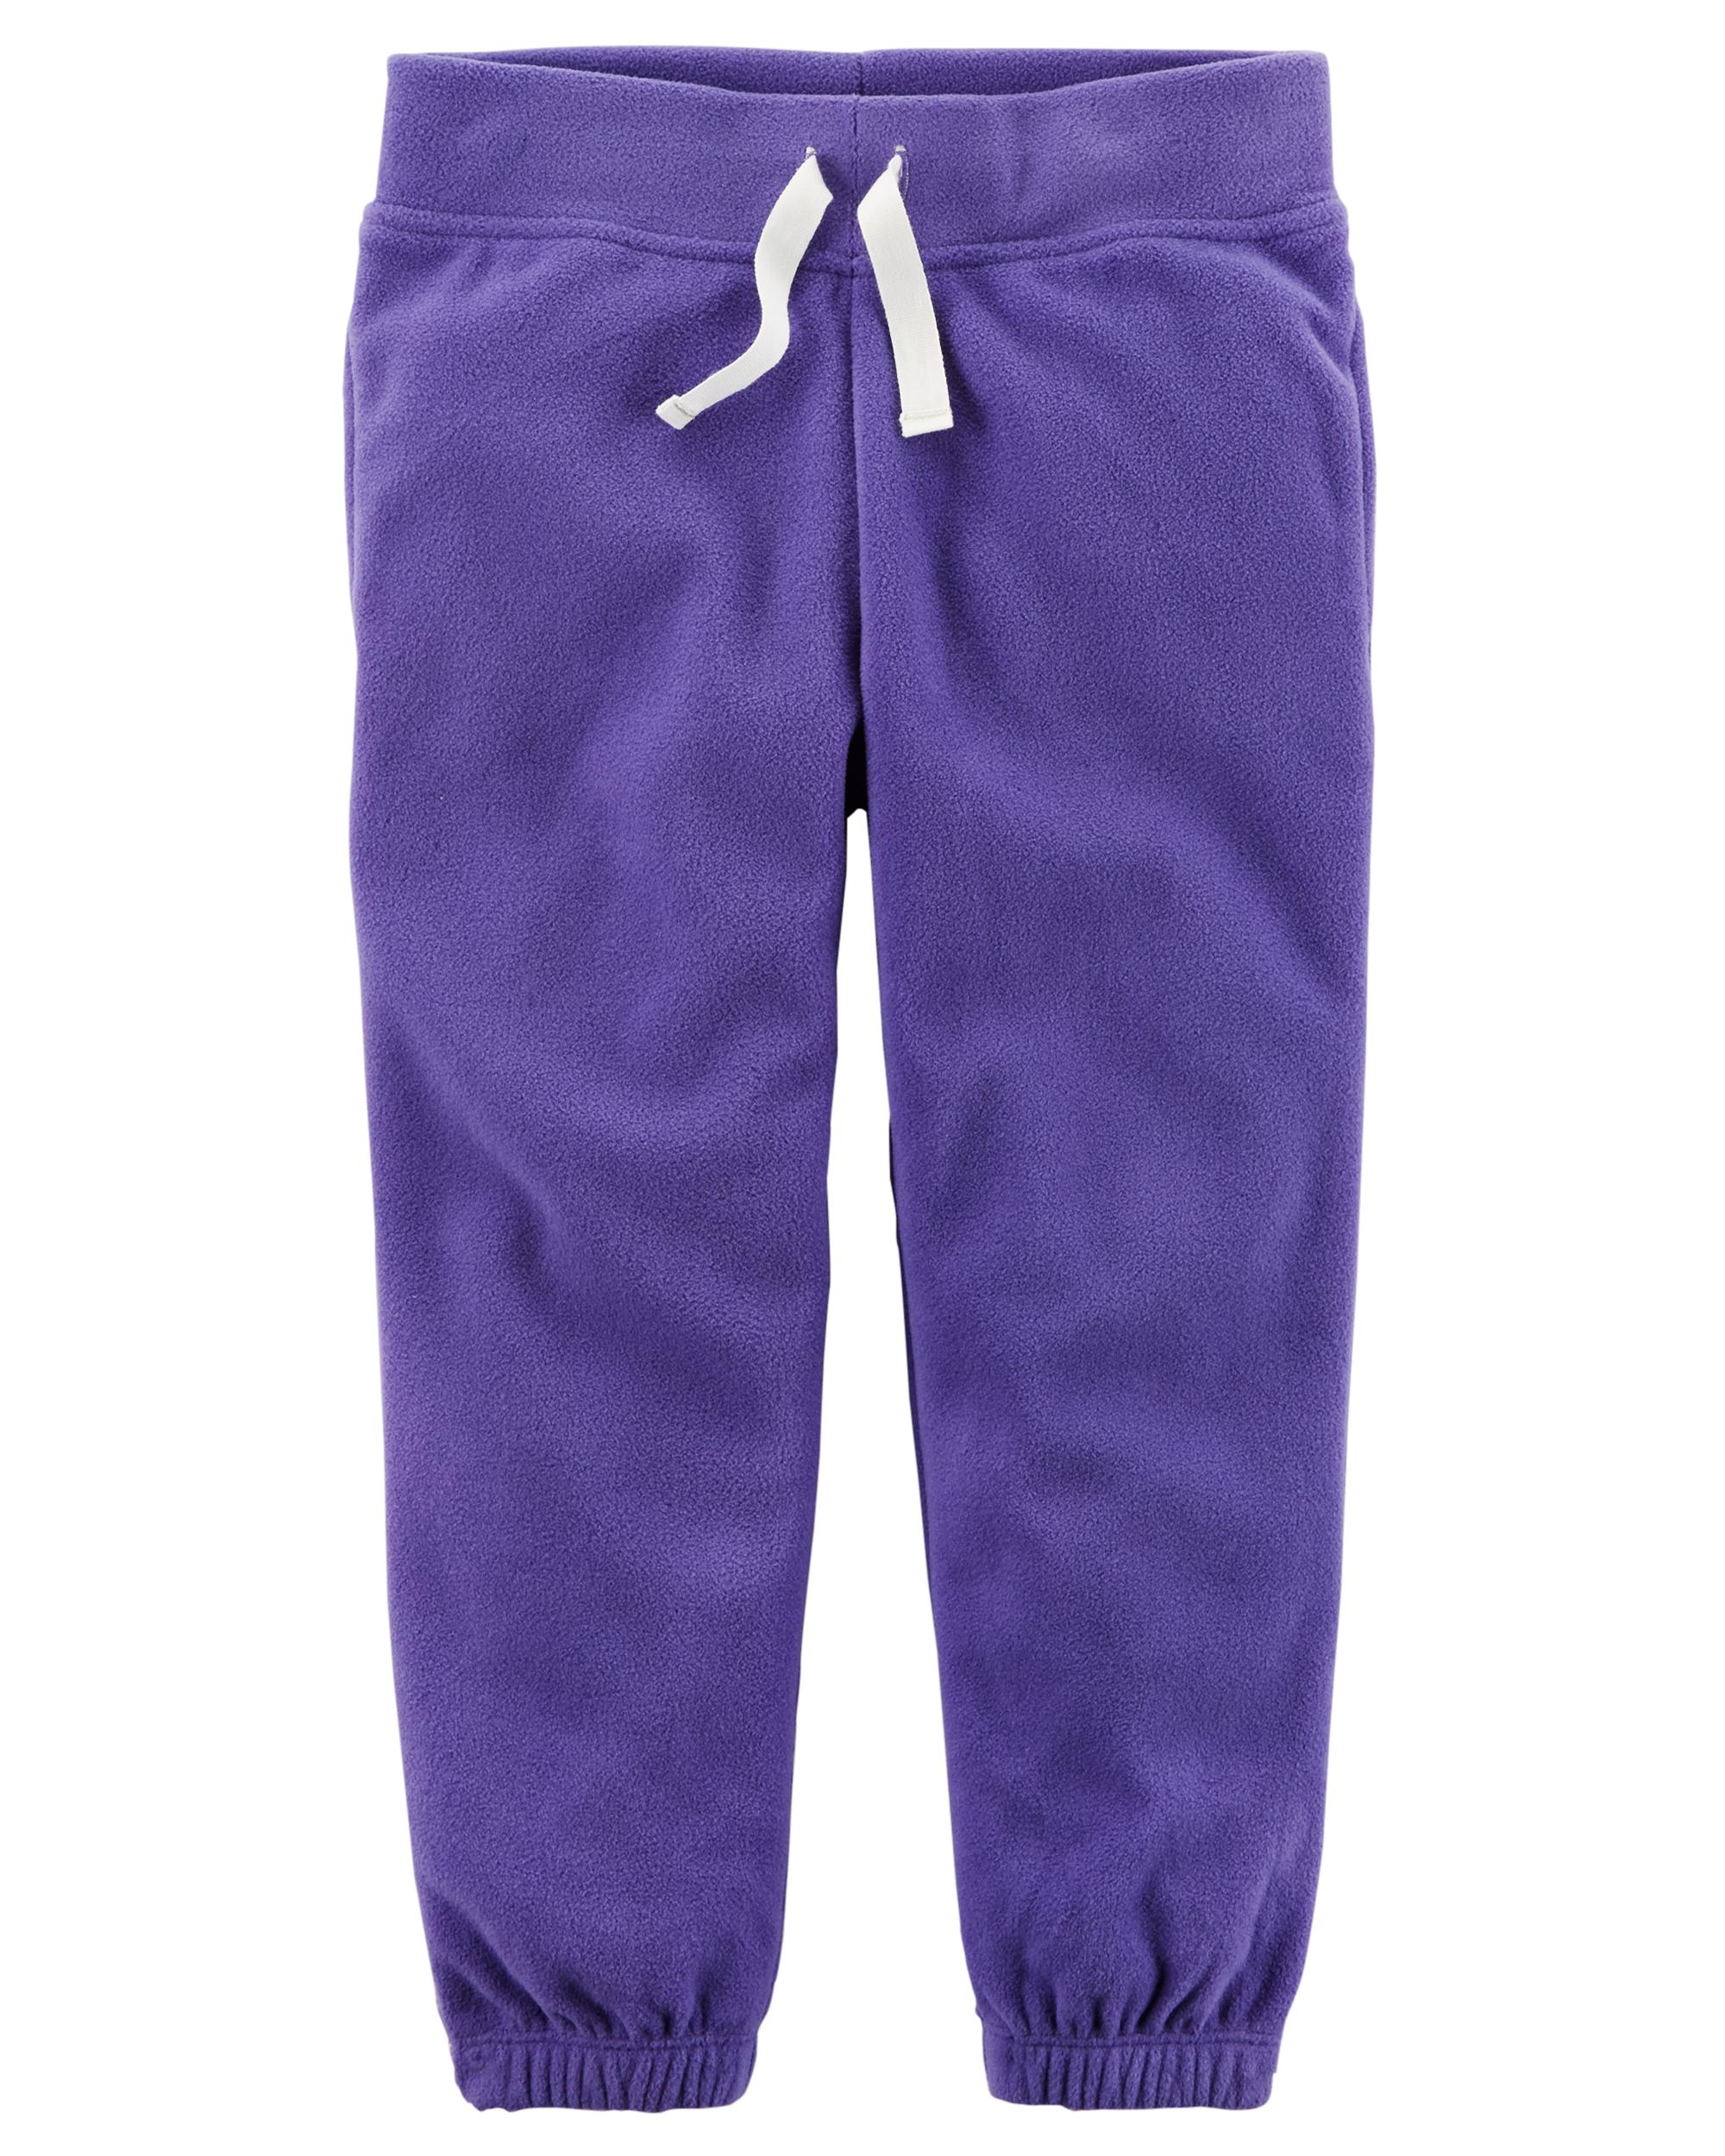 Fleece Active Joggers Elastic Pants Collect Moments Not Things Sweatpants for Boys /& Girls